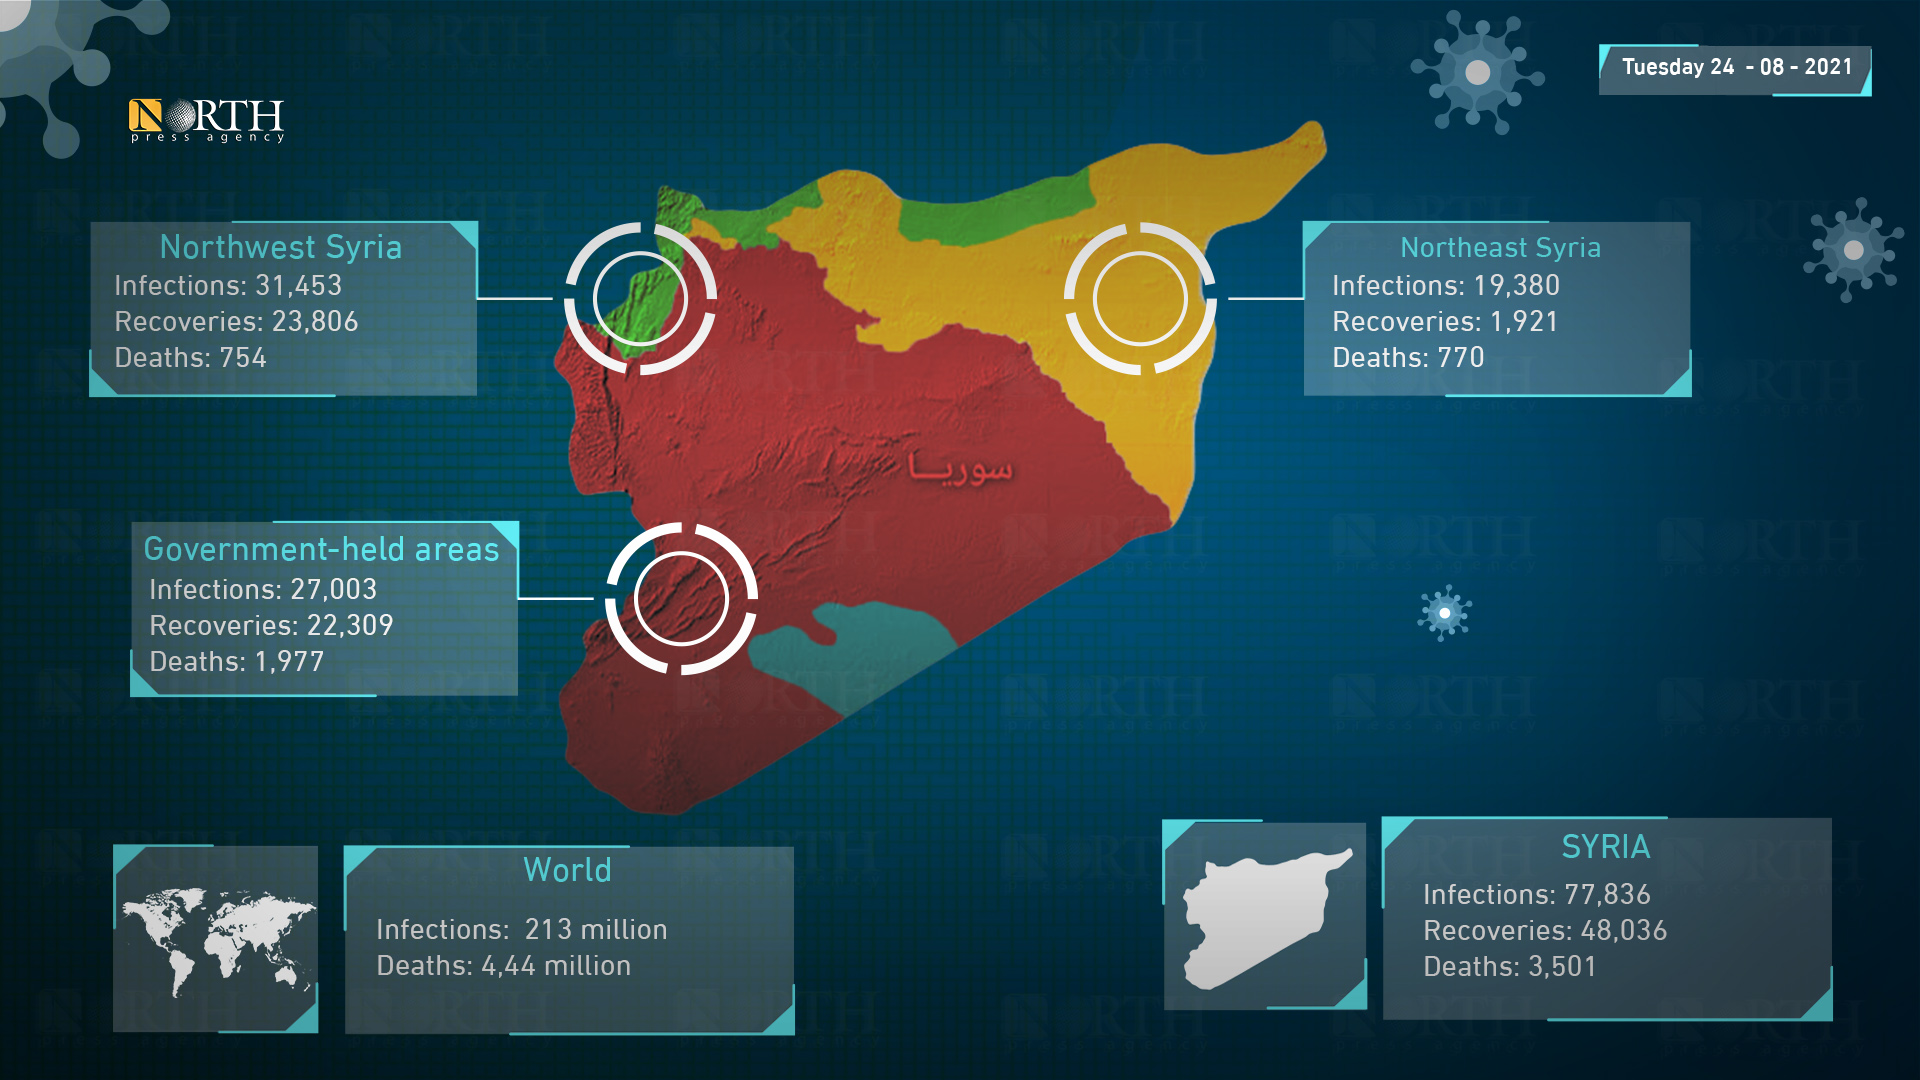 Latest figures for the spread of coronavirus in Syria, Tuesday, August 24